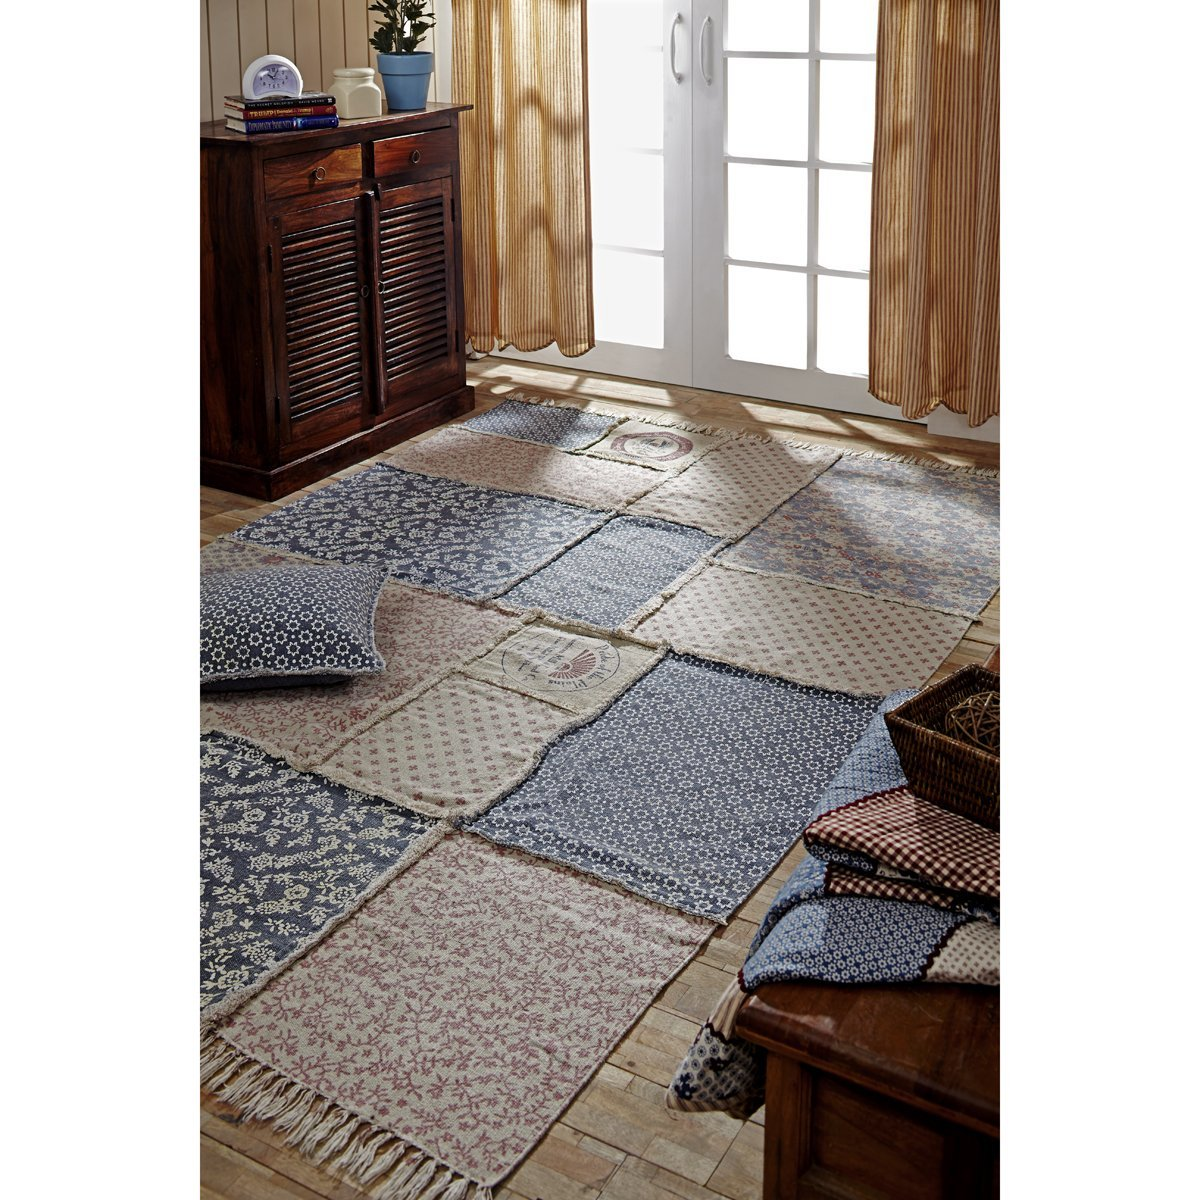 VHC Brands Farmhouse Flooring – Millie White Patchwork Rug, 5 x 8